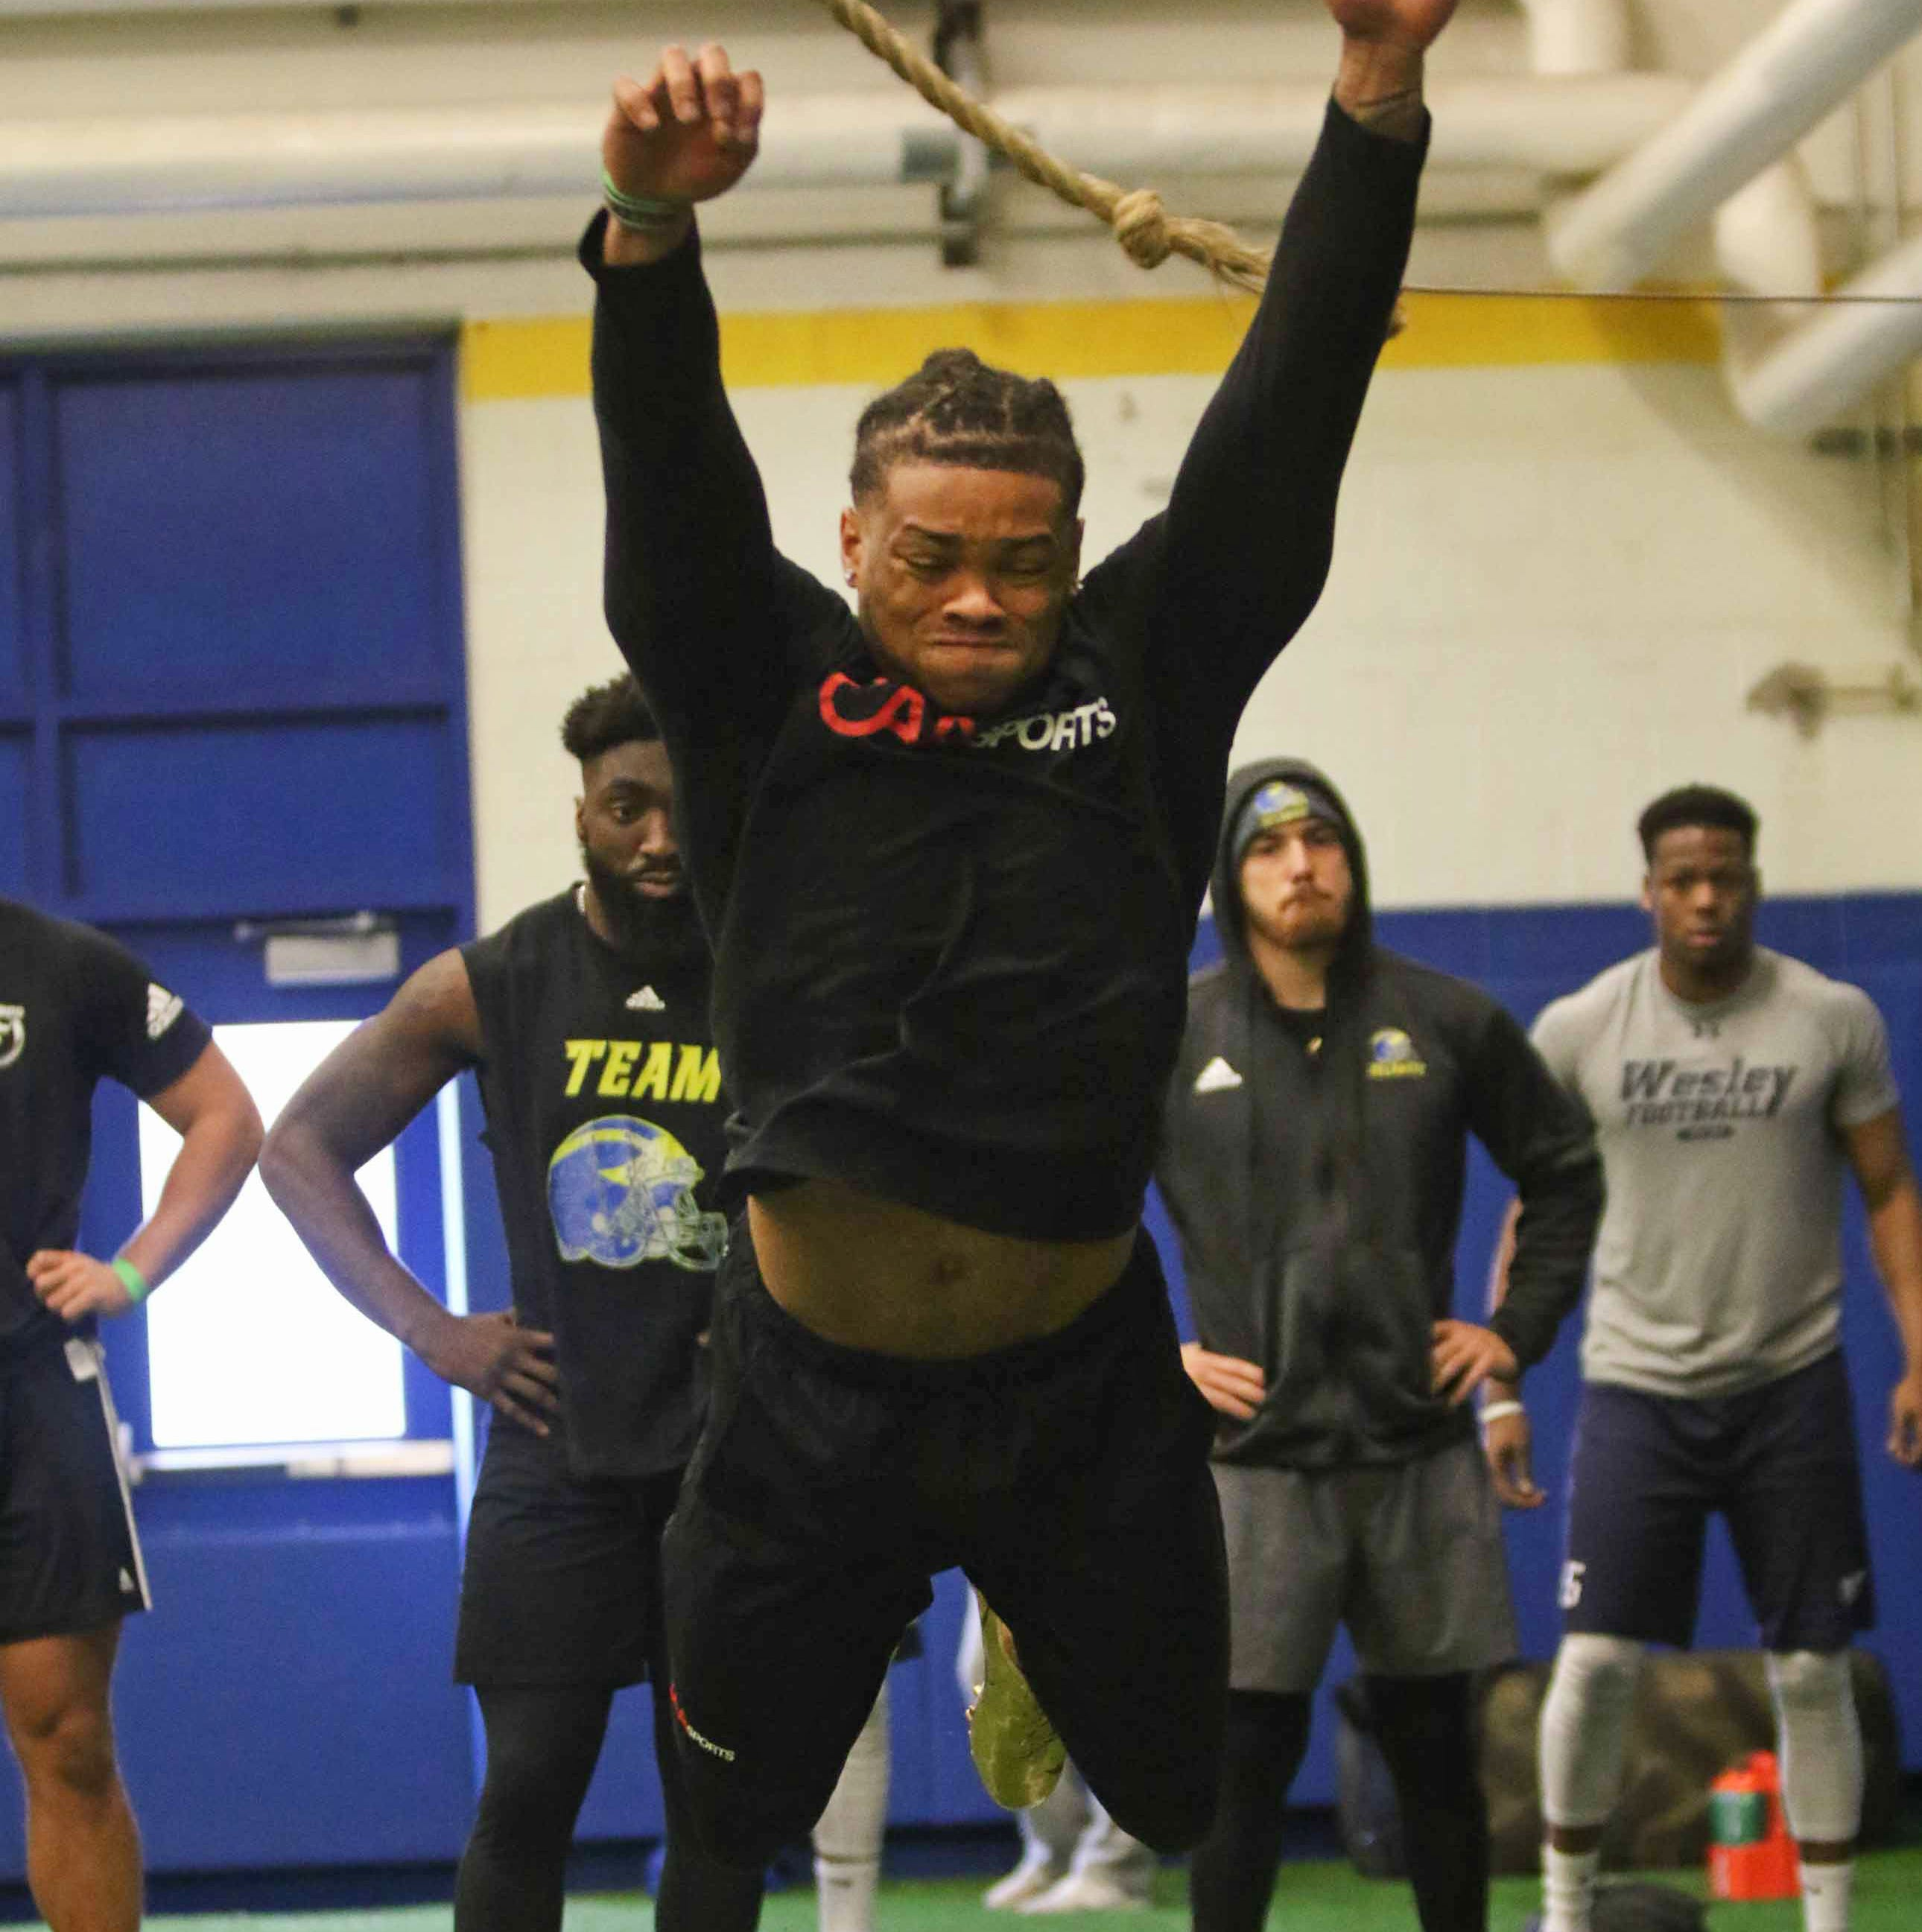 Potential Eagles target, Delaware star Nasir Adderley, ends pro day early with injury